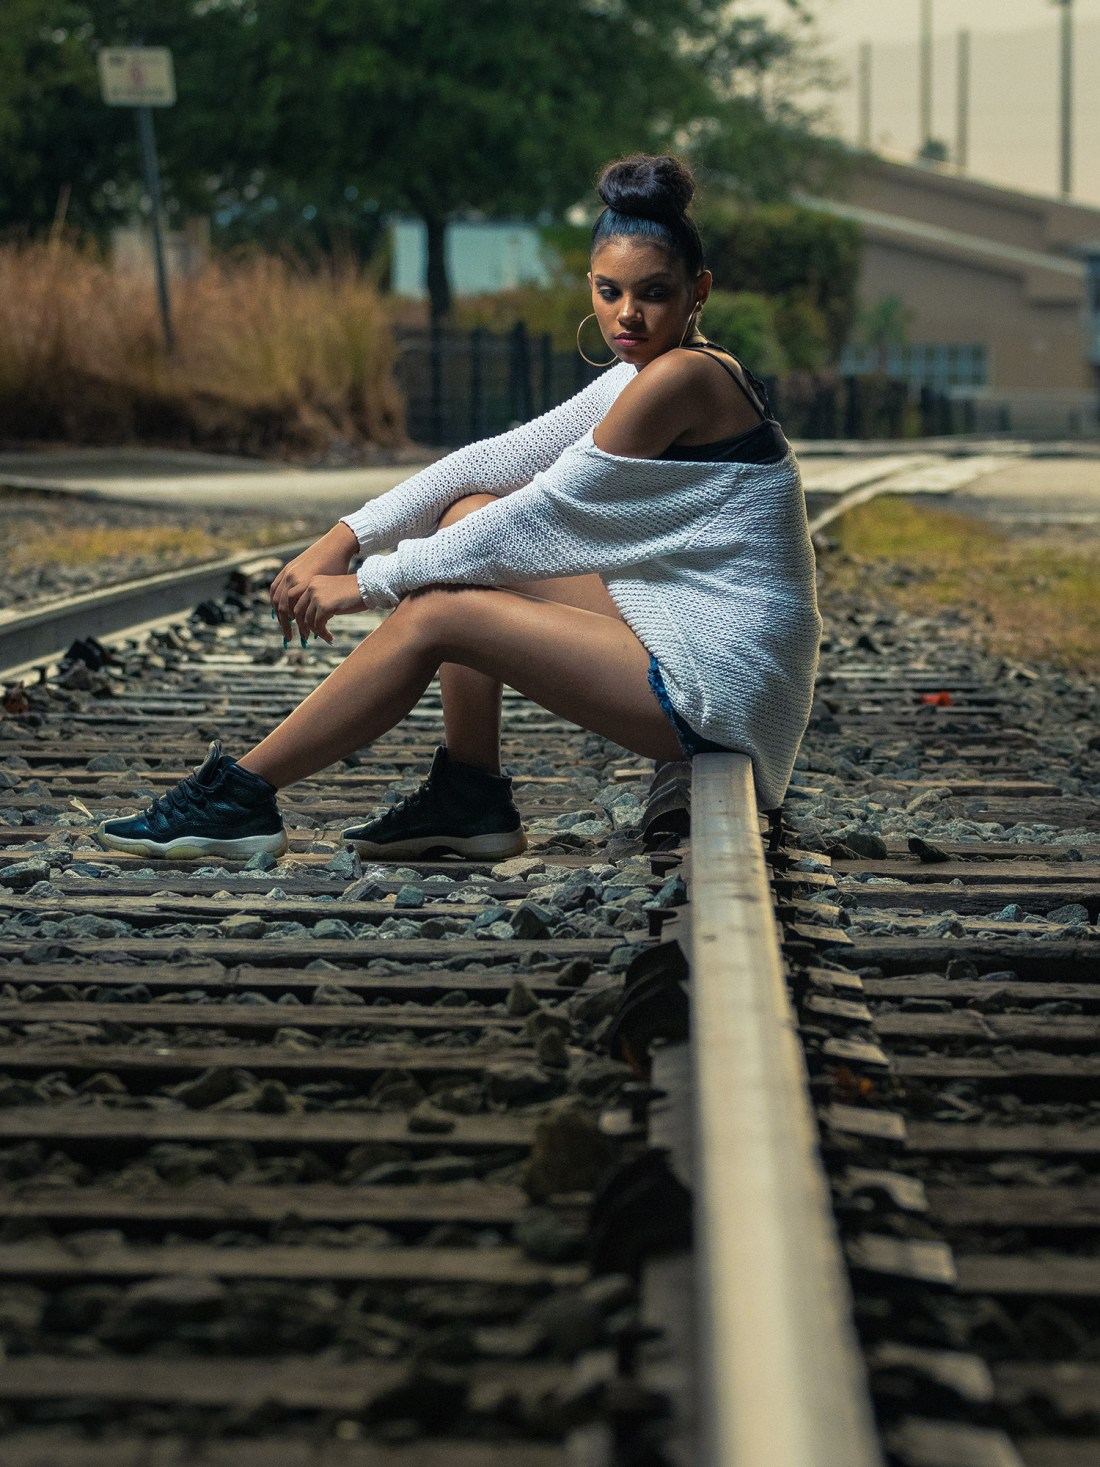 sitting on train rail cool photography luis betancourt photography